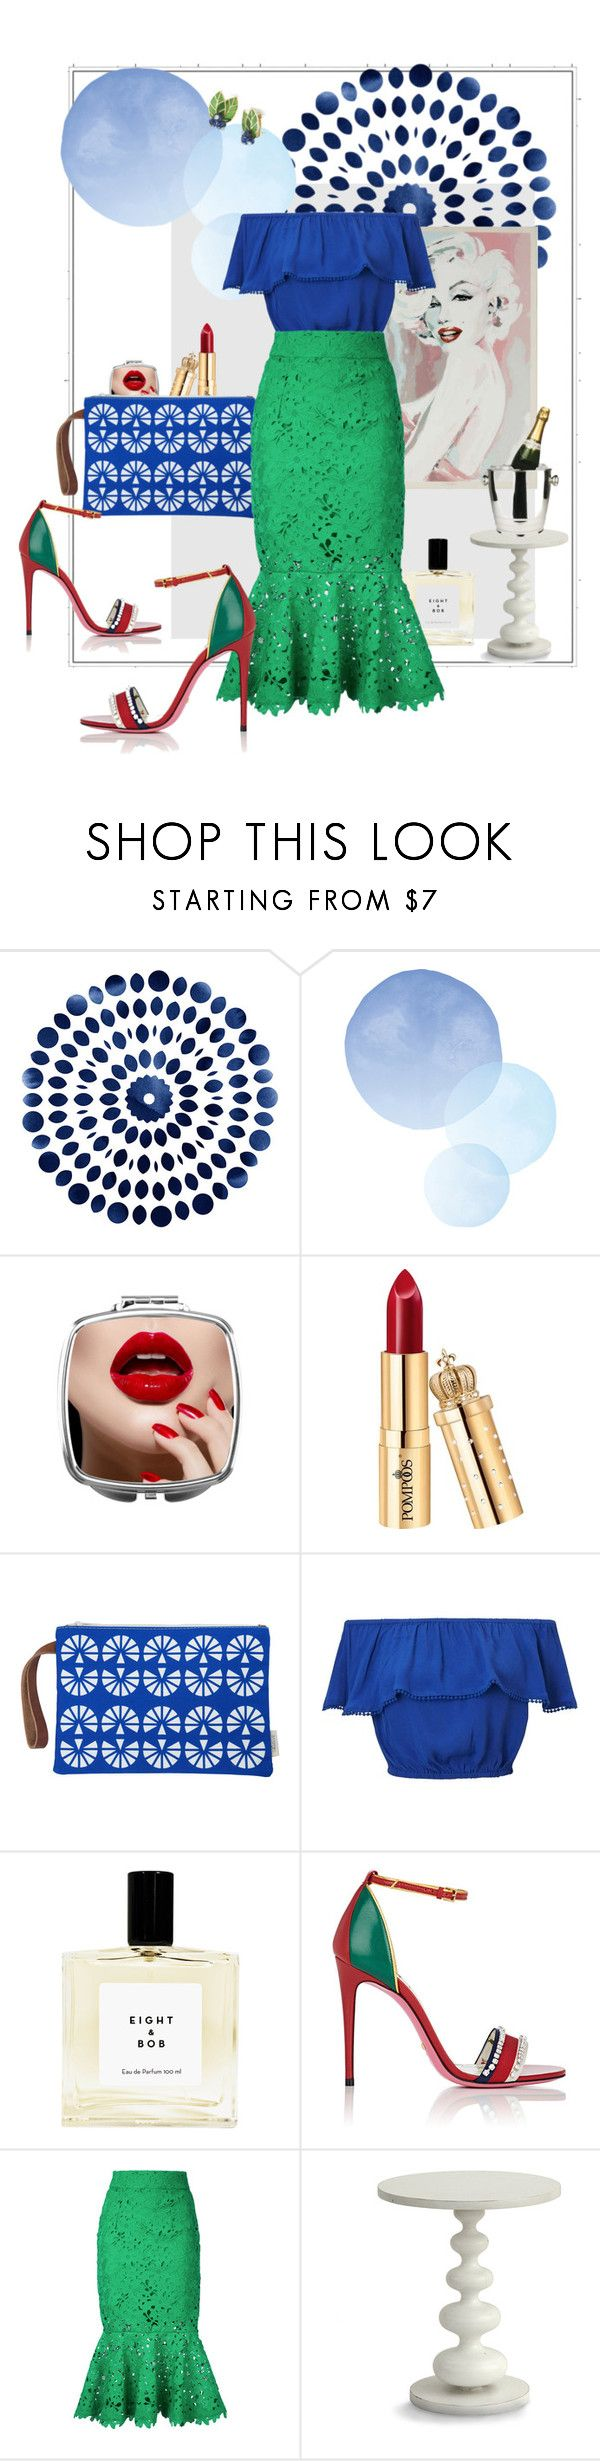 """BnG"" by ohnoflo ❤ liked on Polyvore featuring Bob Mackie, Hera, Miss Selfridge, Gucci, Bambah, Redford House, Winco, MissSelfridge, gucci and eightandbob"